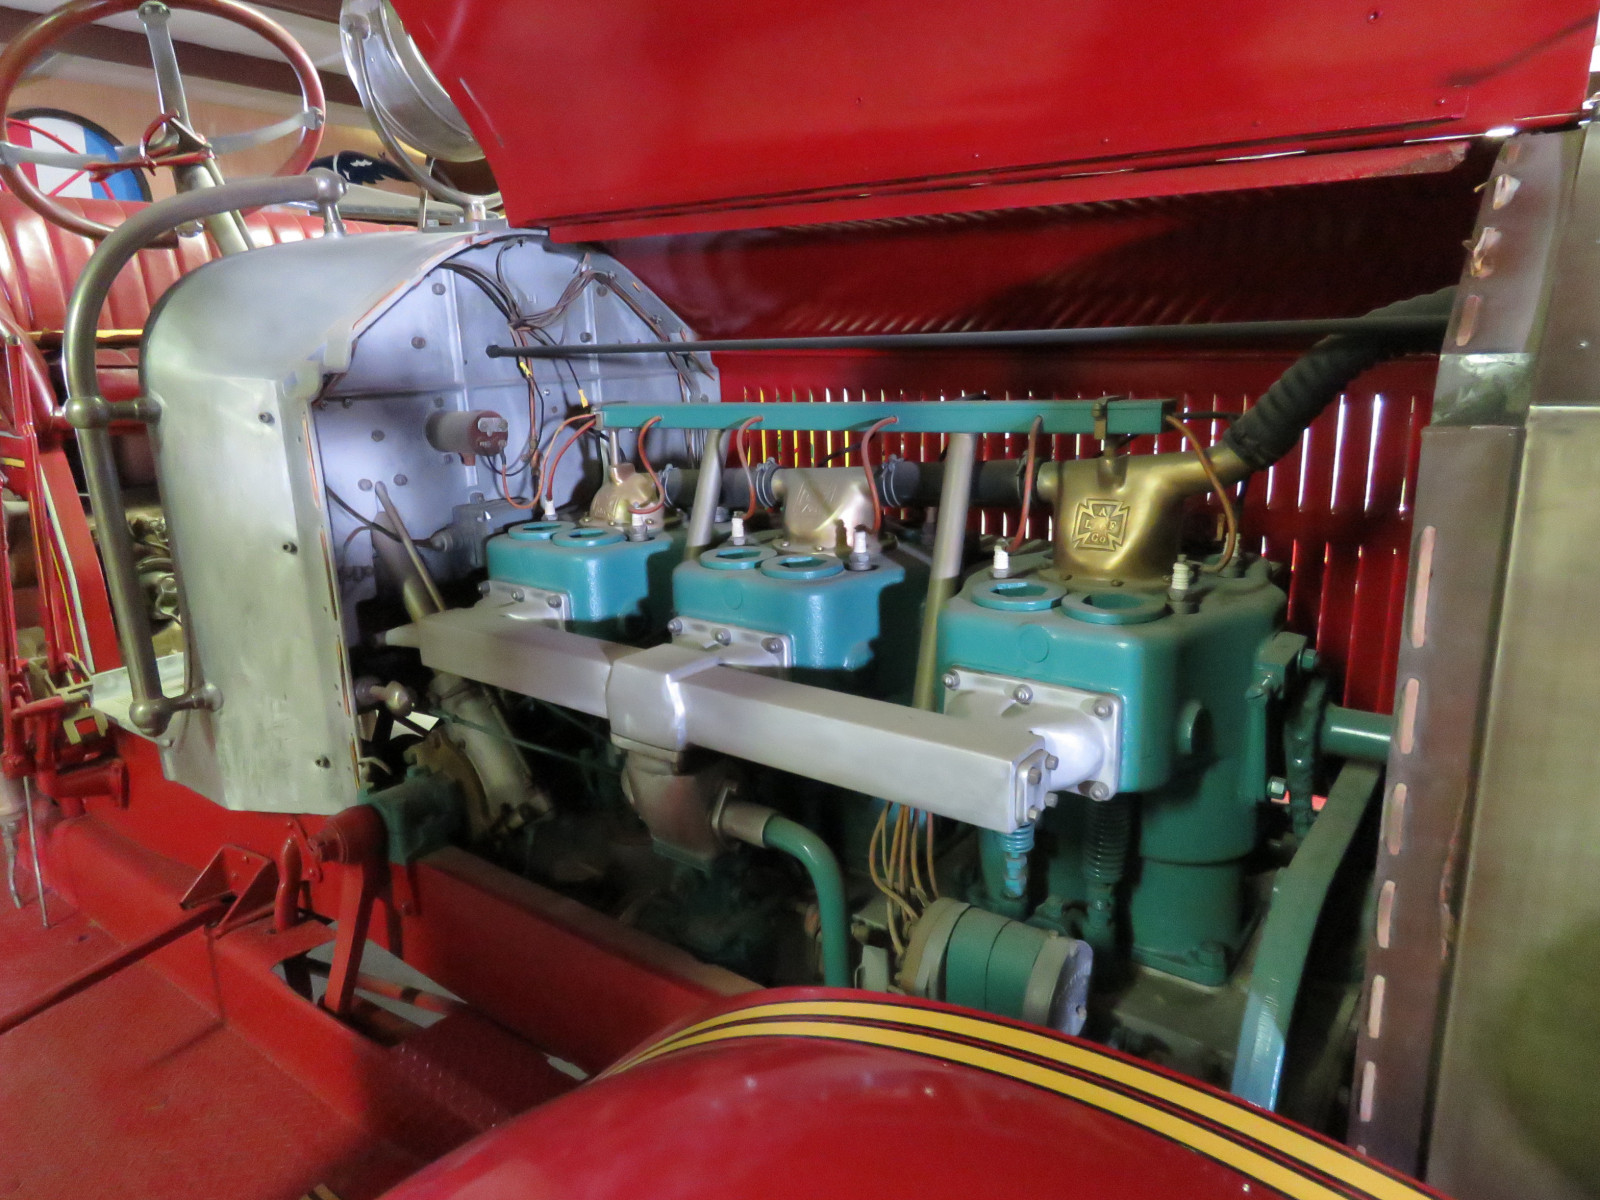 1927 American LaFrance Fire Truck 6107 - Image 14